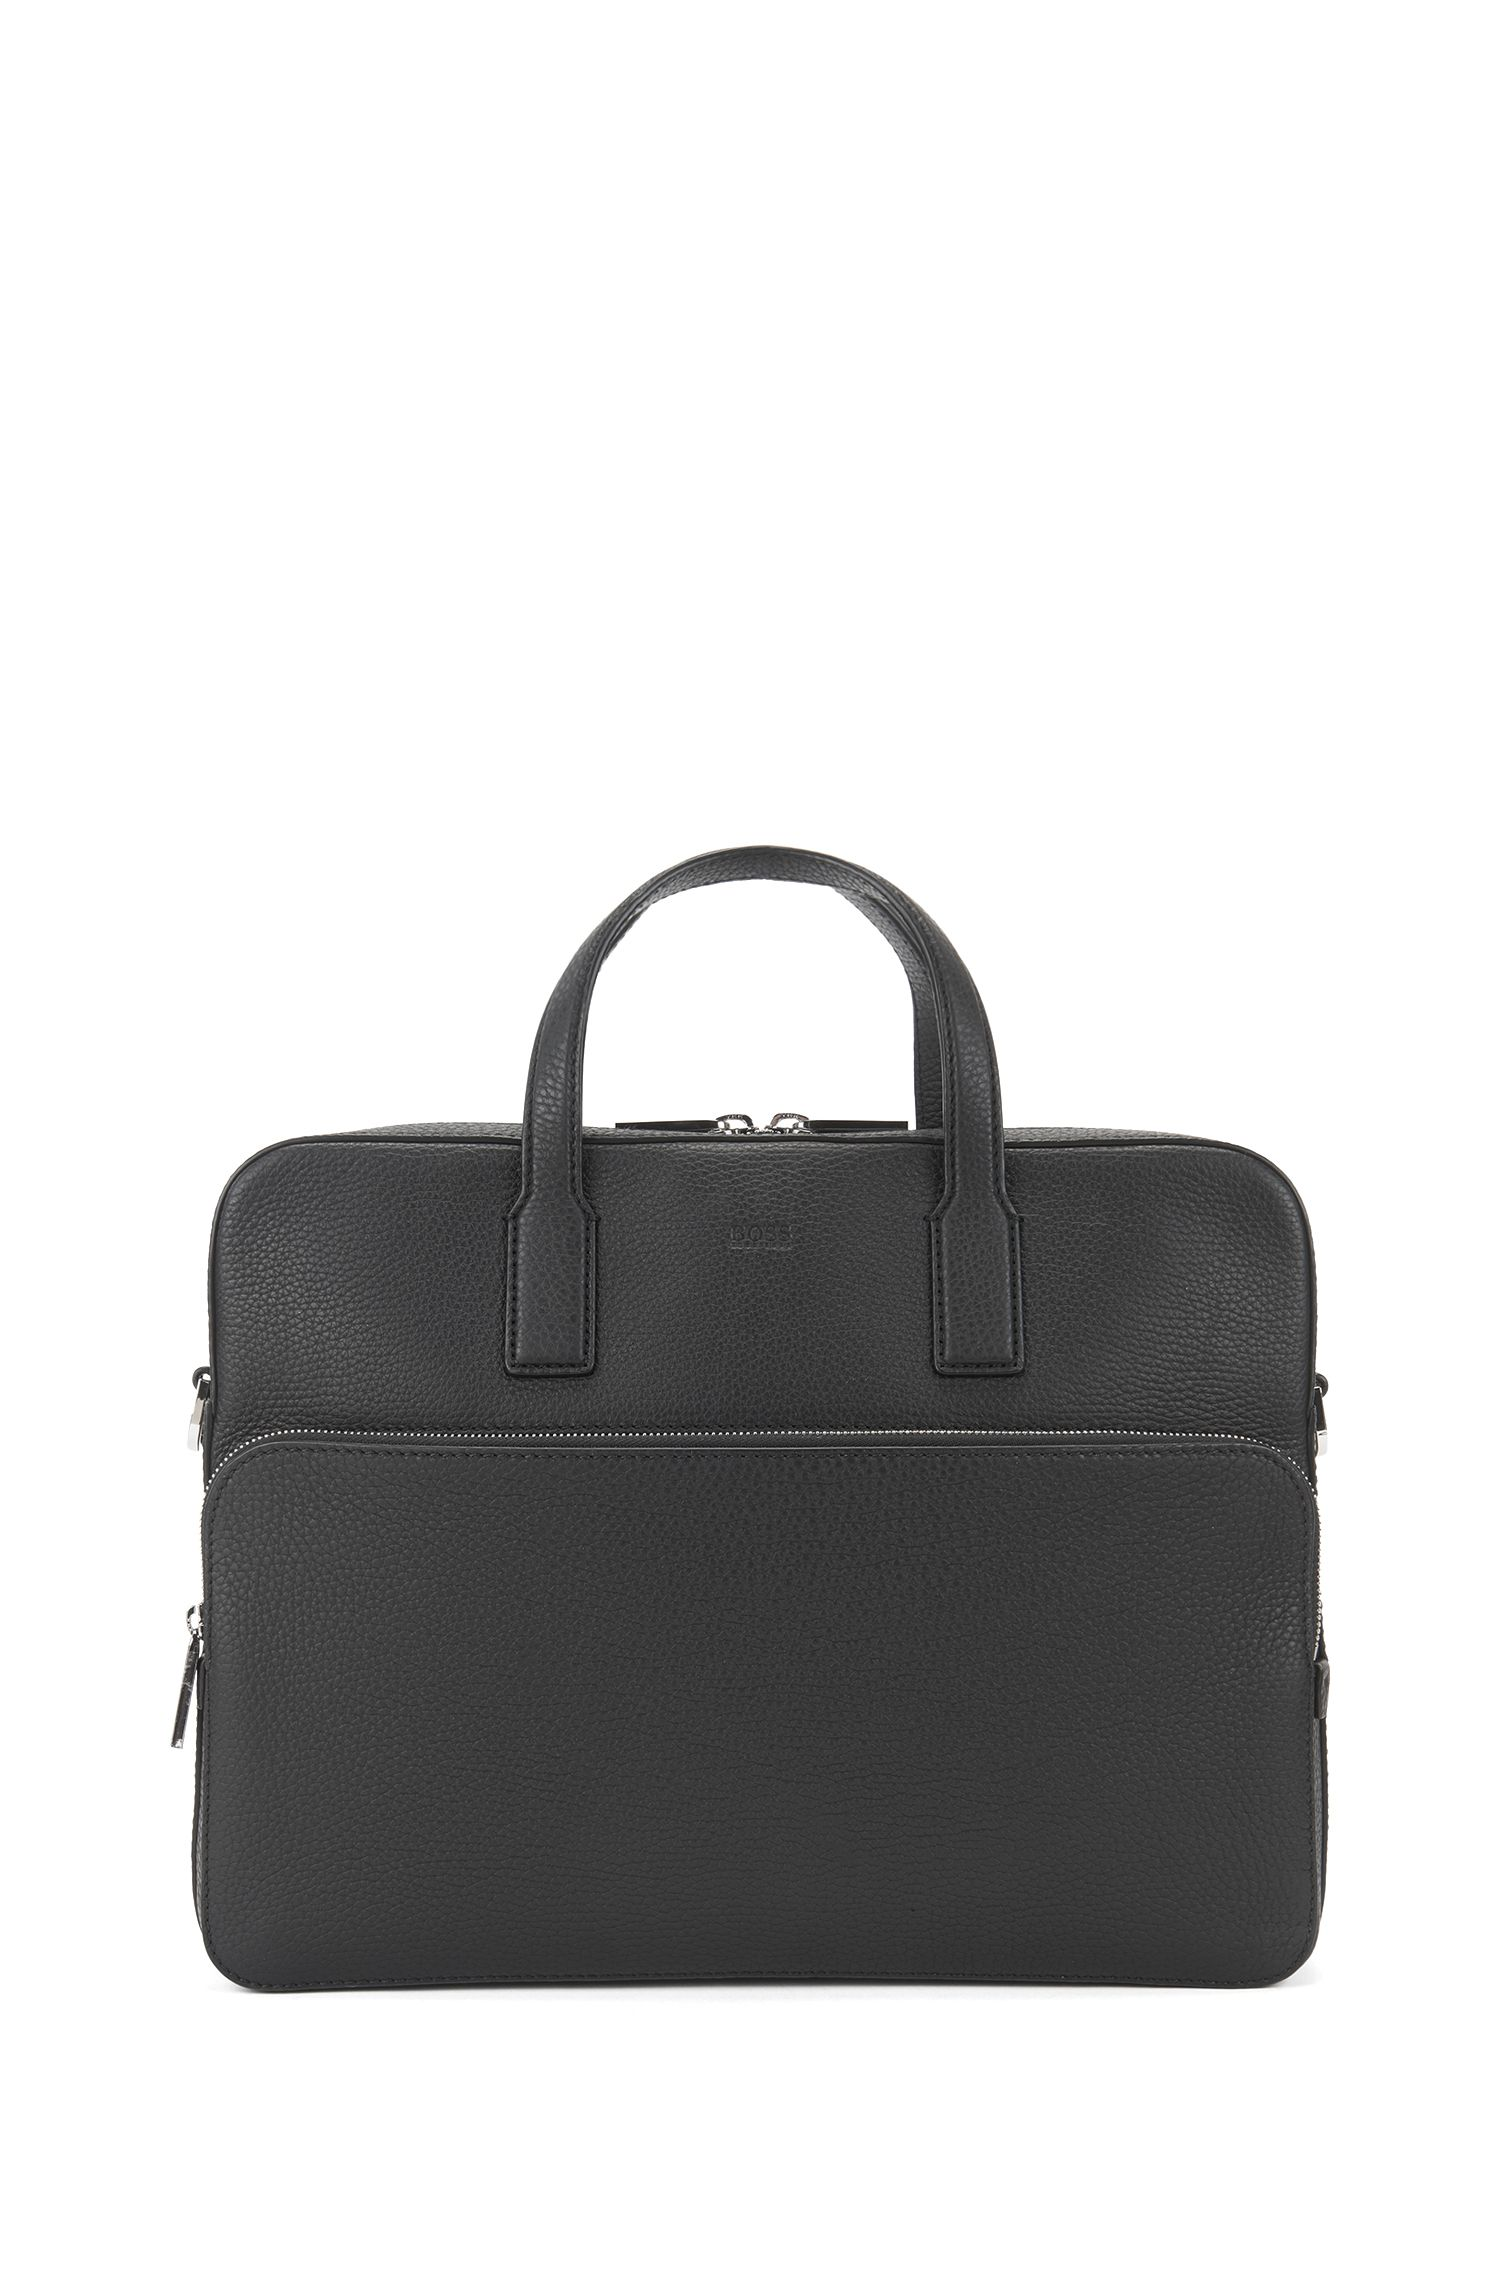 Single document case in grained Italian leather